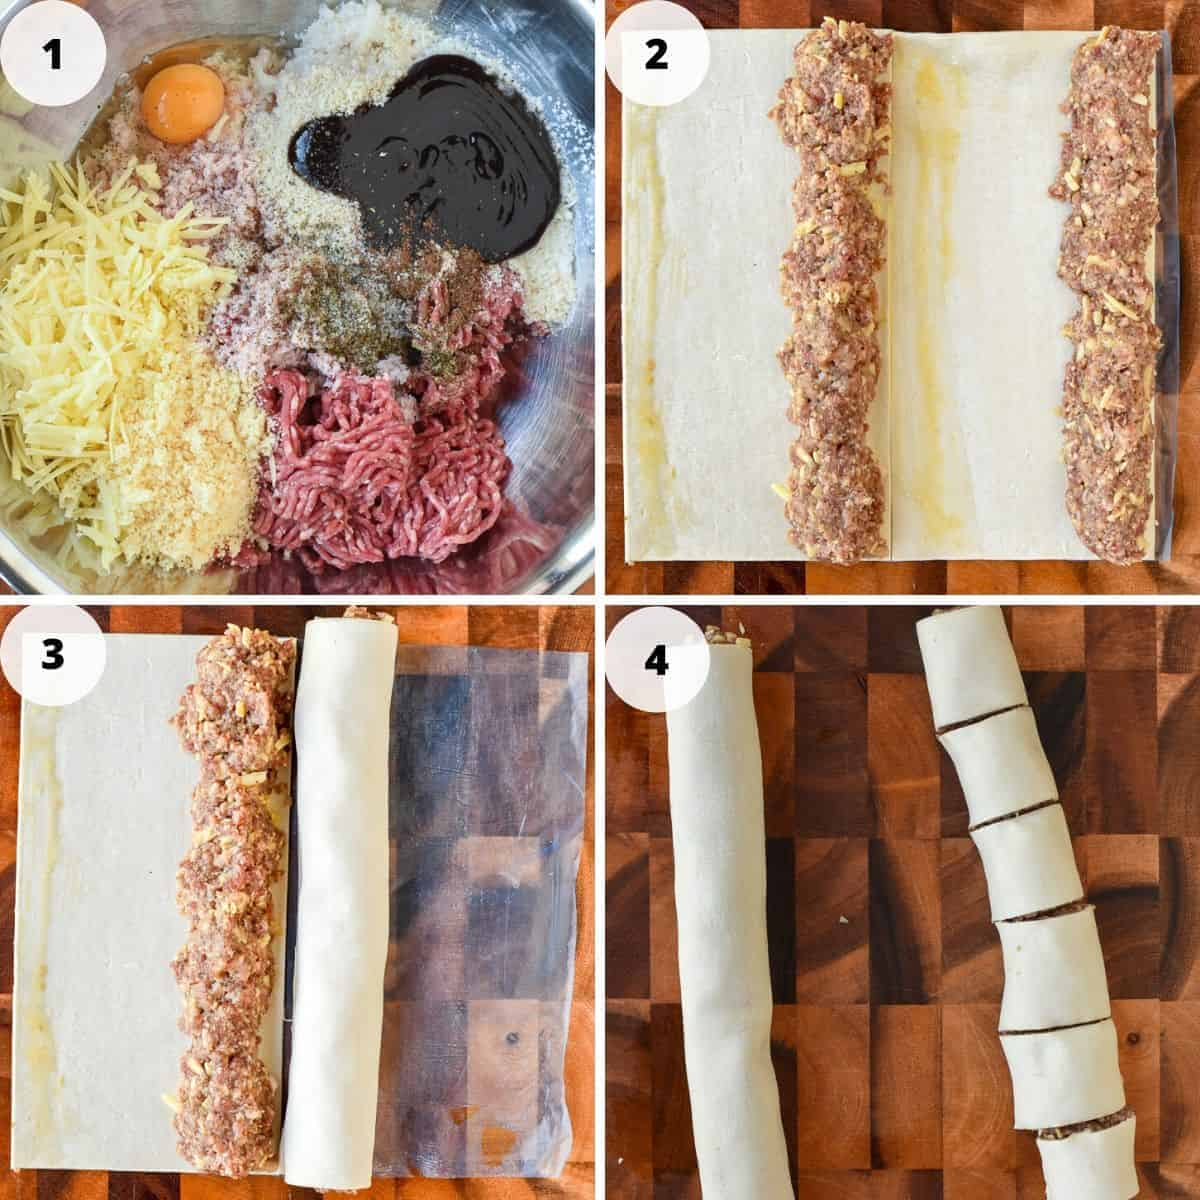 Four images in one. 1st image ingredients for sausage rolls in a bowl, 2nd image square of pastry with meat filling in two rows, 3rd image one cylinder of pastry and one ready to be rolled, 4th image one cylinder of pastry one cut into pieces